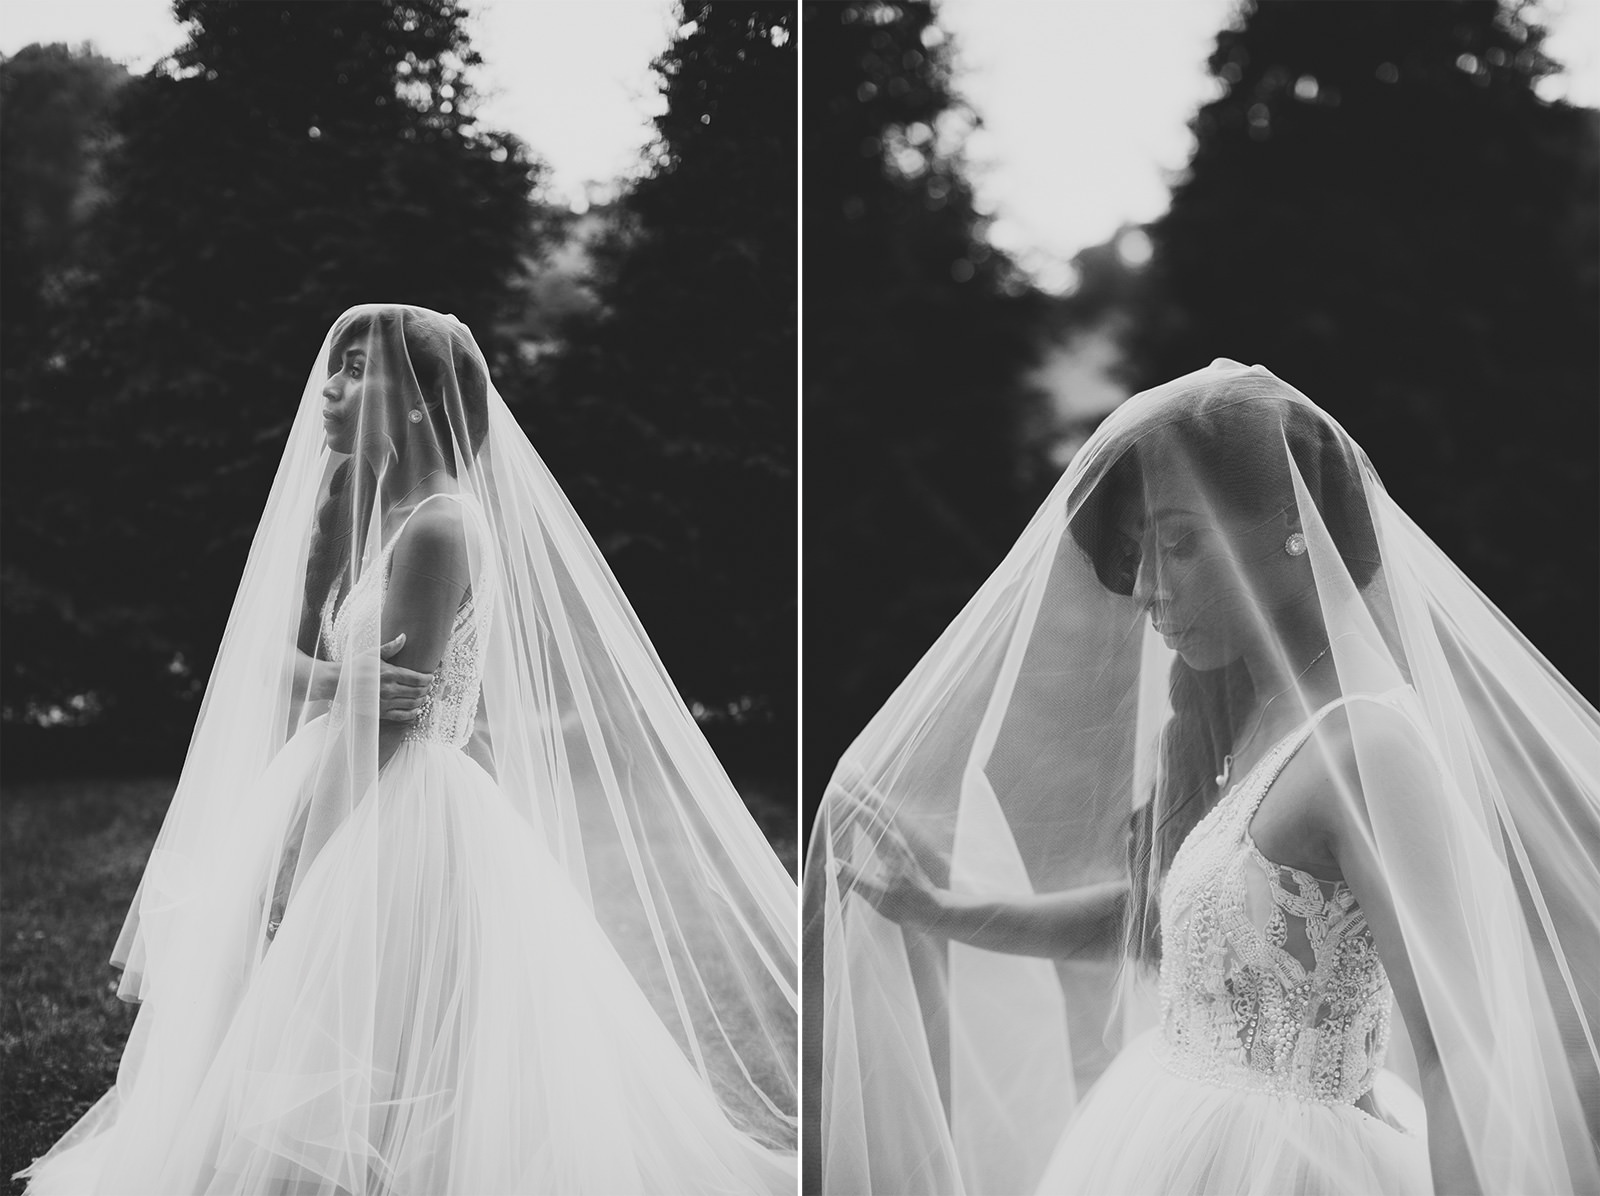 dramatic veil photos bride